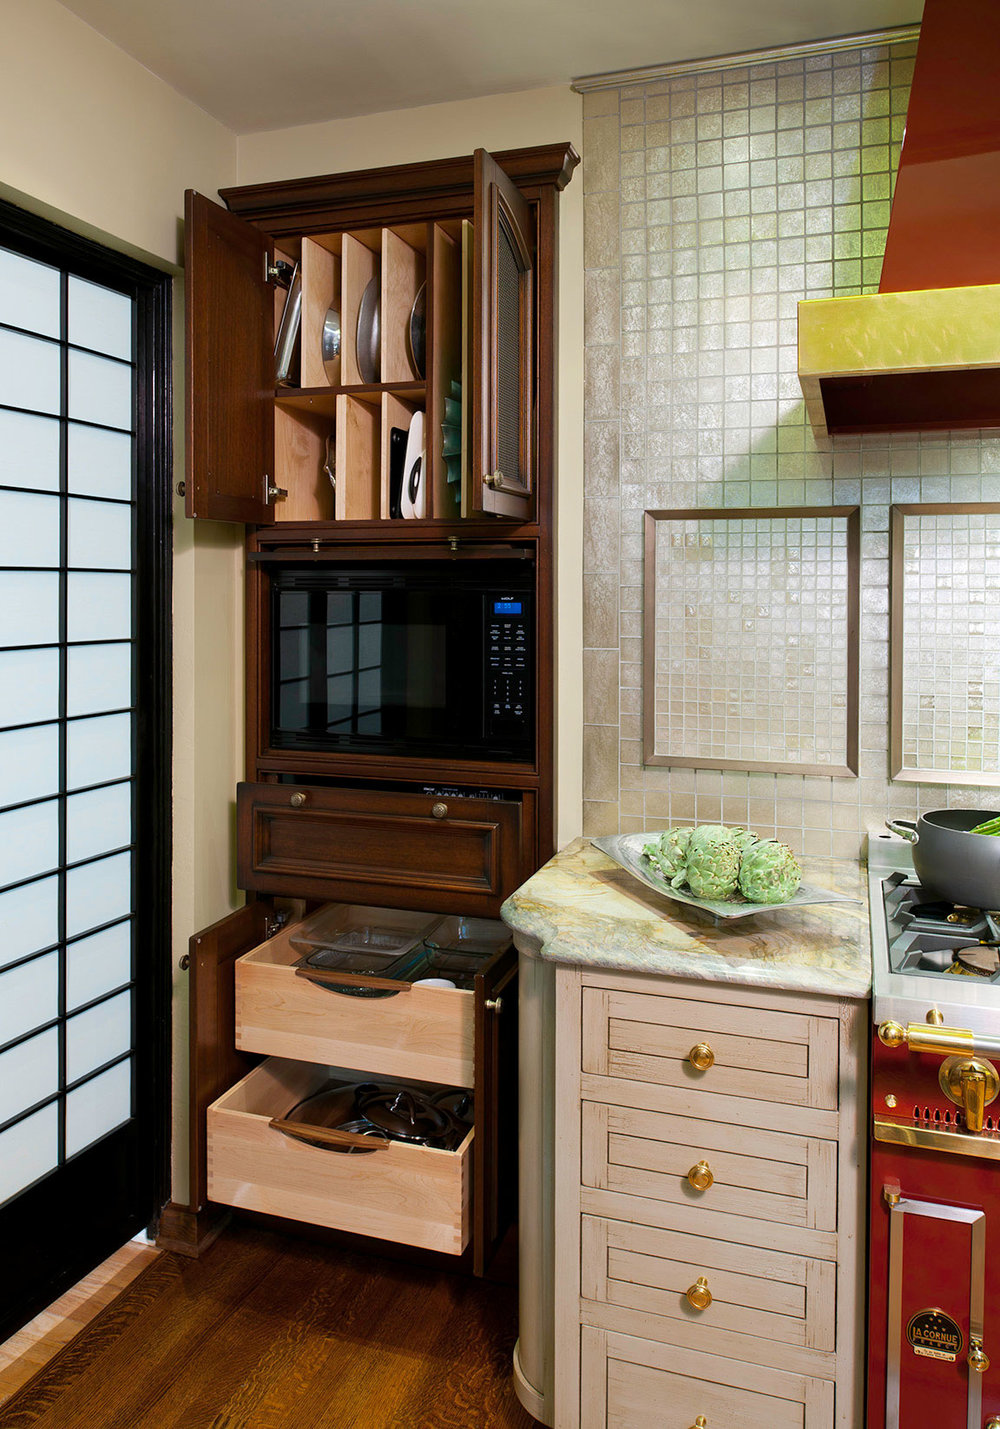 kitchen_bath_Concepts_pittsburgh_traditional_home5_11.jpg